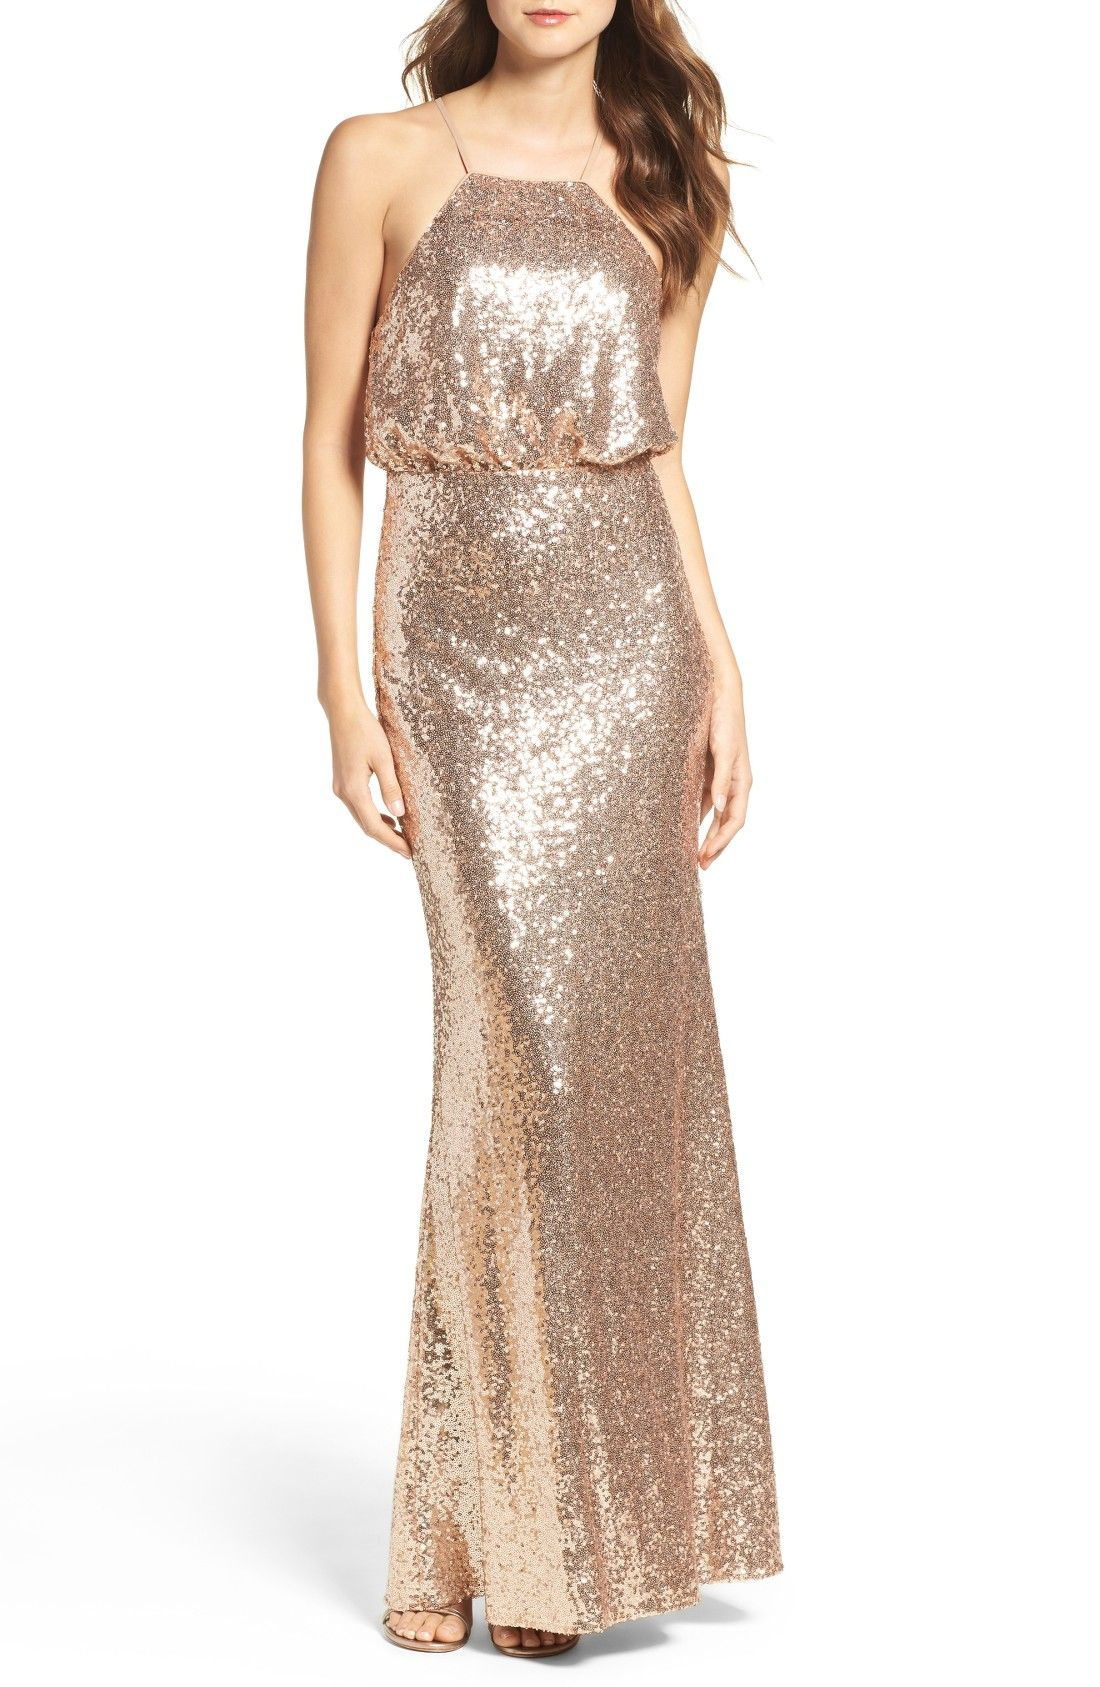 Sequined Bridesmaid Dress | Gowns, Gold weddings and Wedding